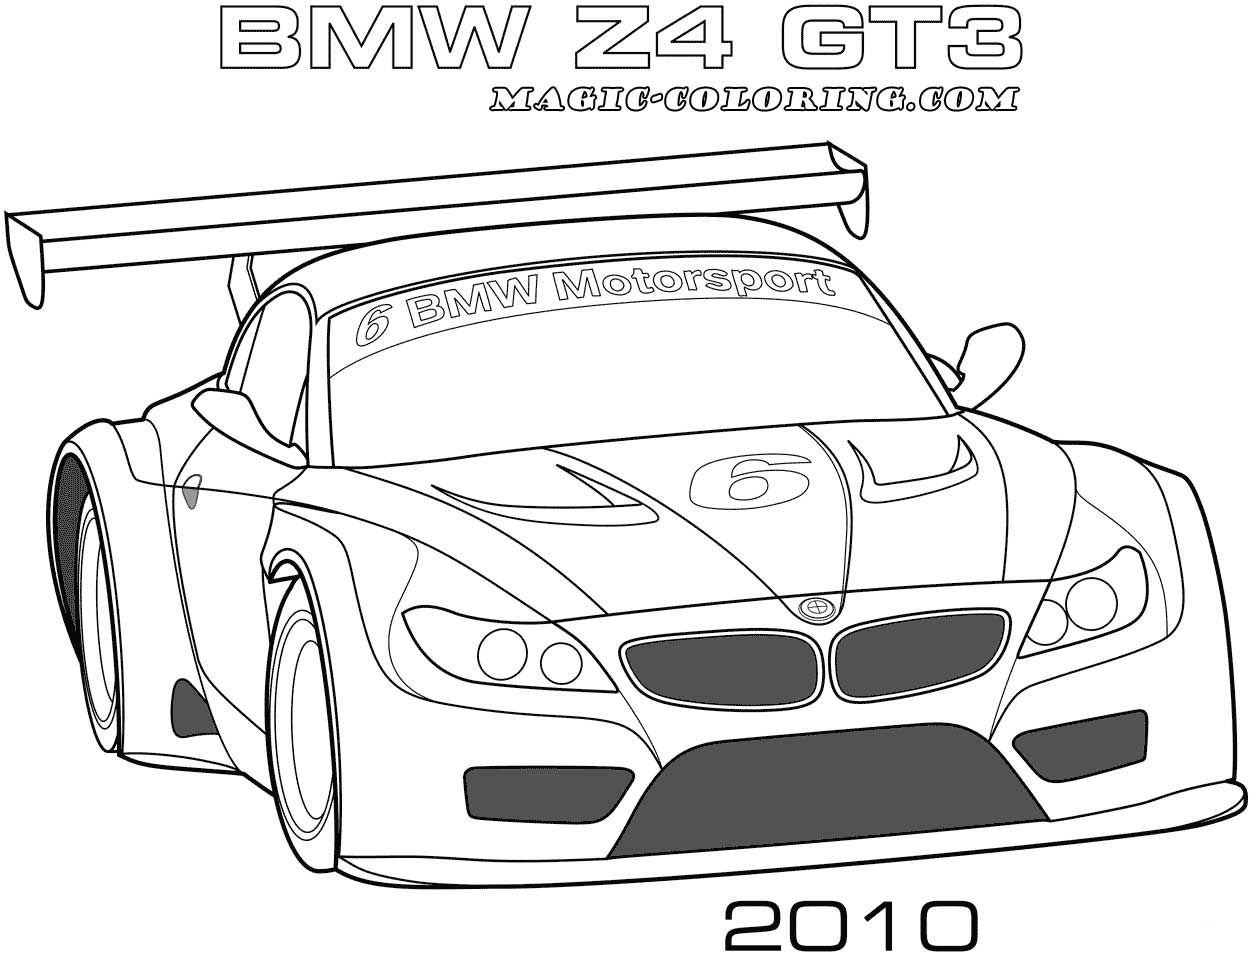 2010 Bmw Z4 Gt3 Coloring Page Cars Coloring Pages Race Car Coloring Pages Bmw Z4